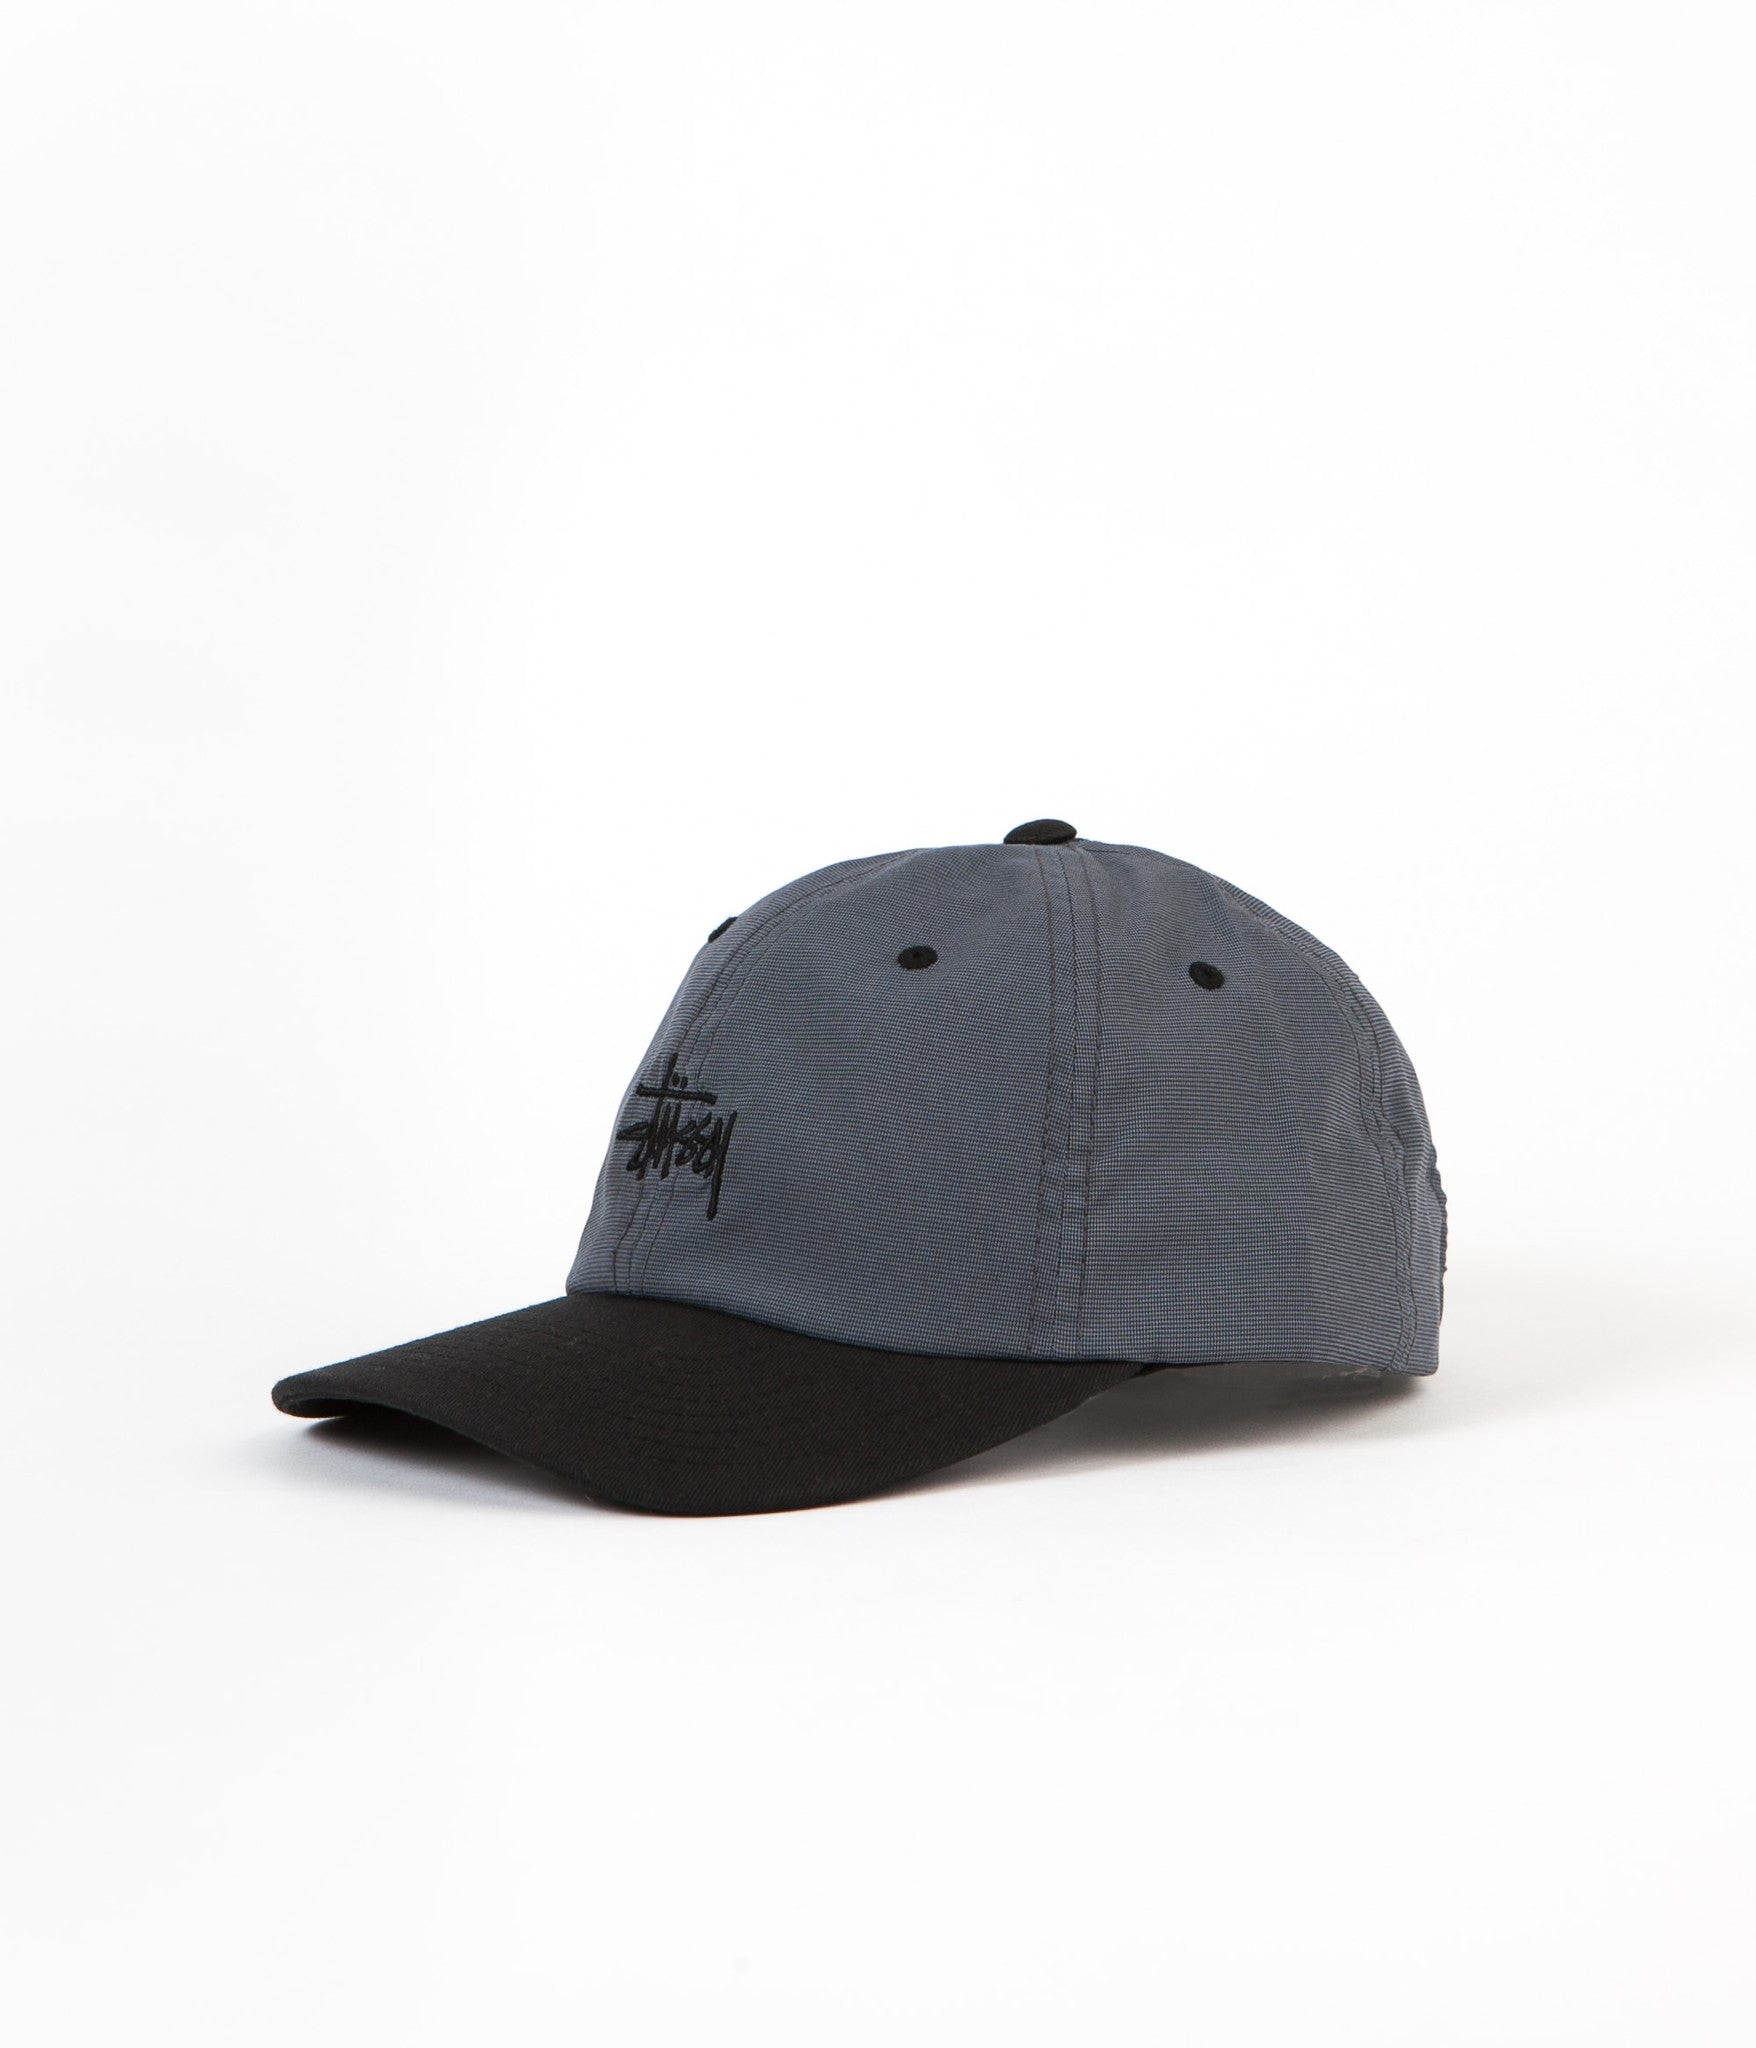 Stussy Mini Houndstooth Cap - Black